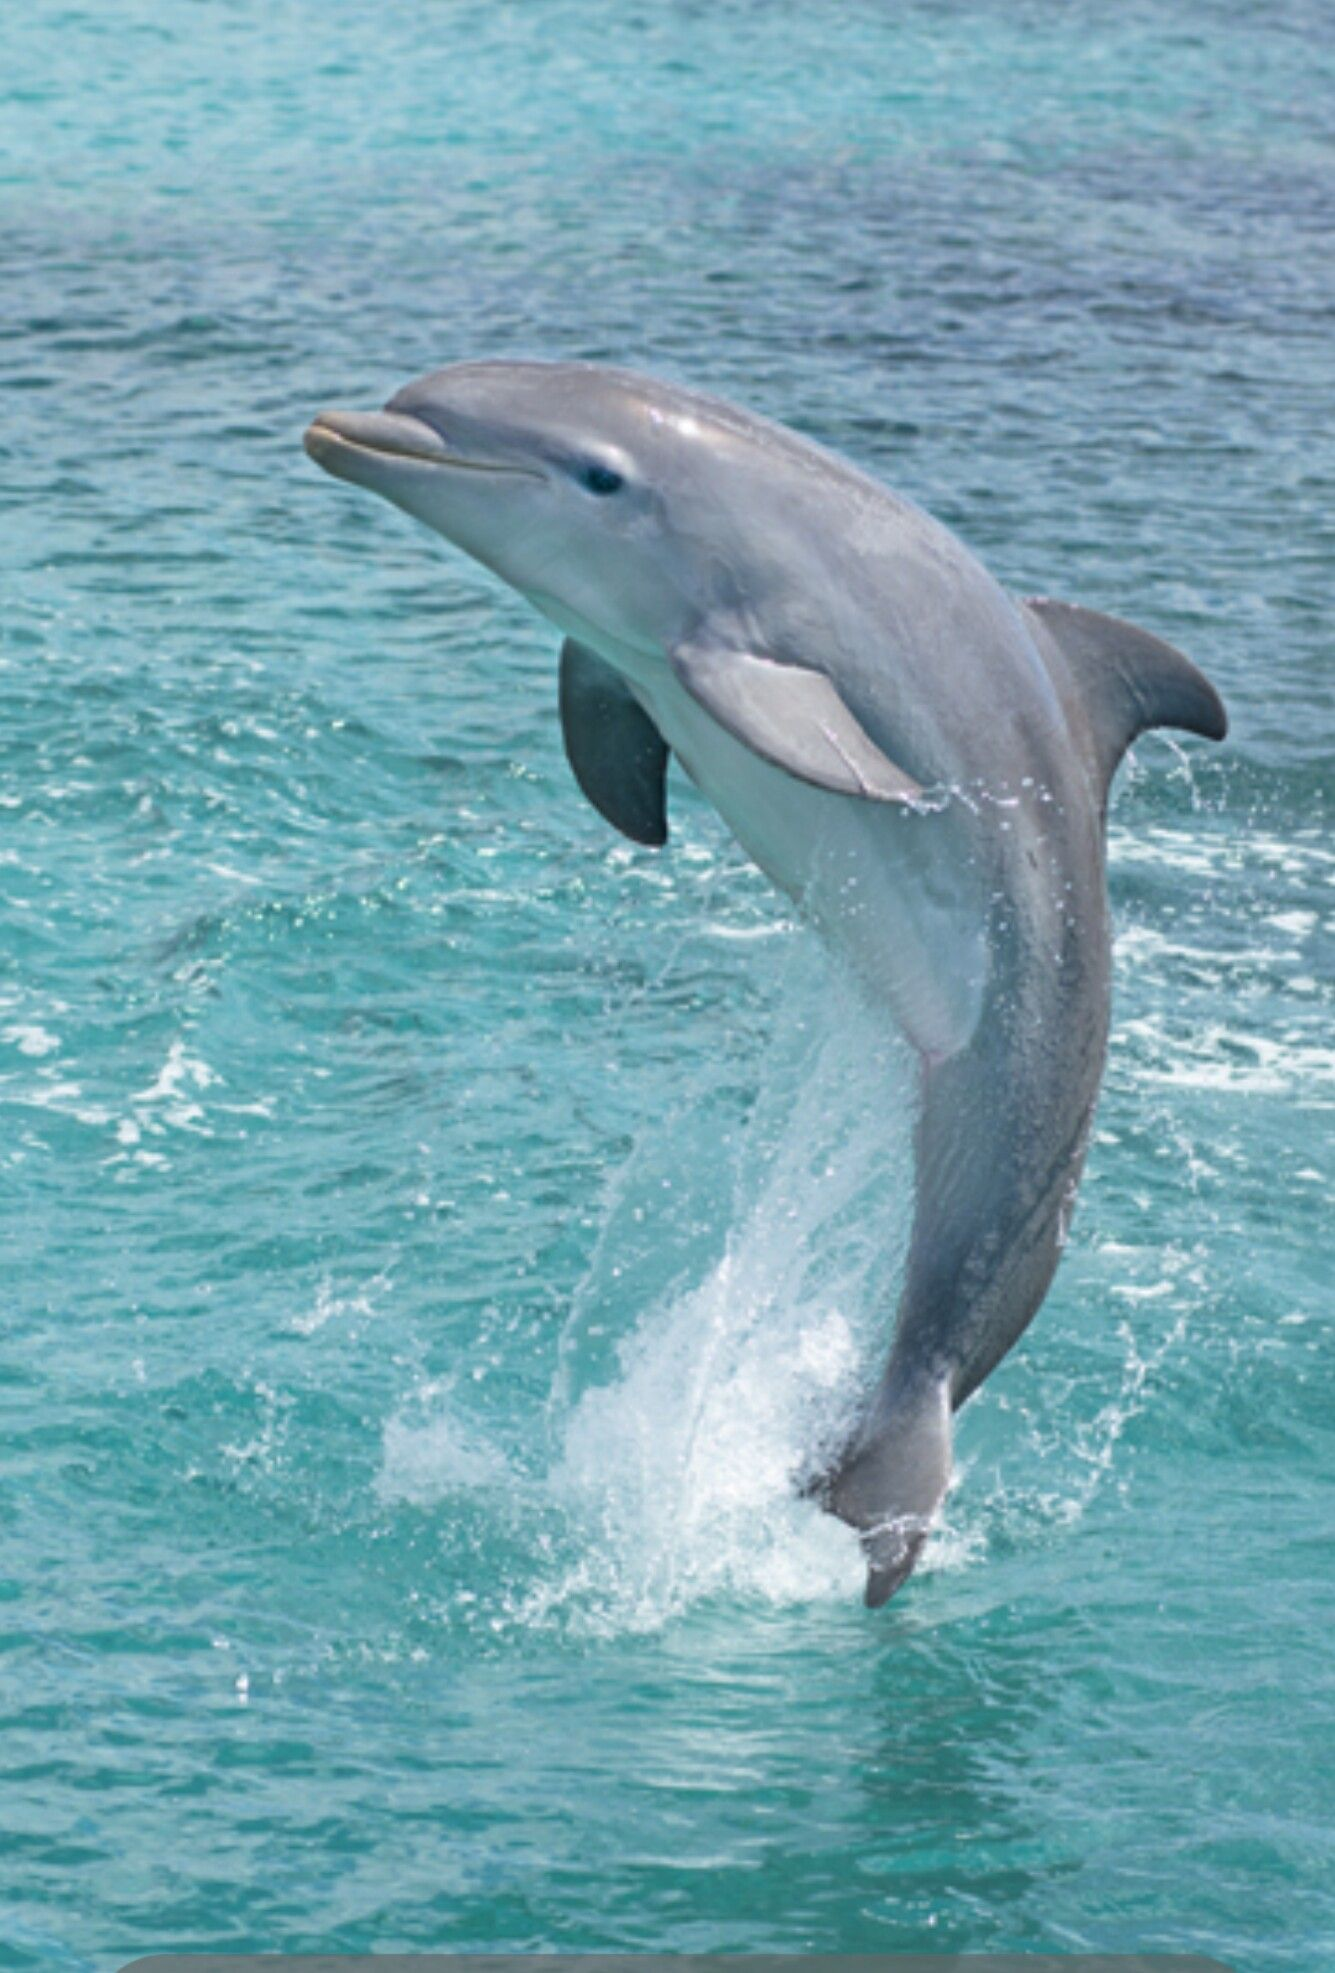 Beauty in the wild | *Dolphins | Pinterest | Animal, Creatures and Ocean